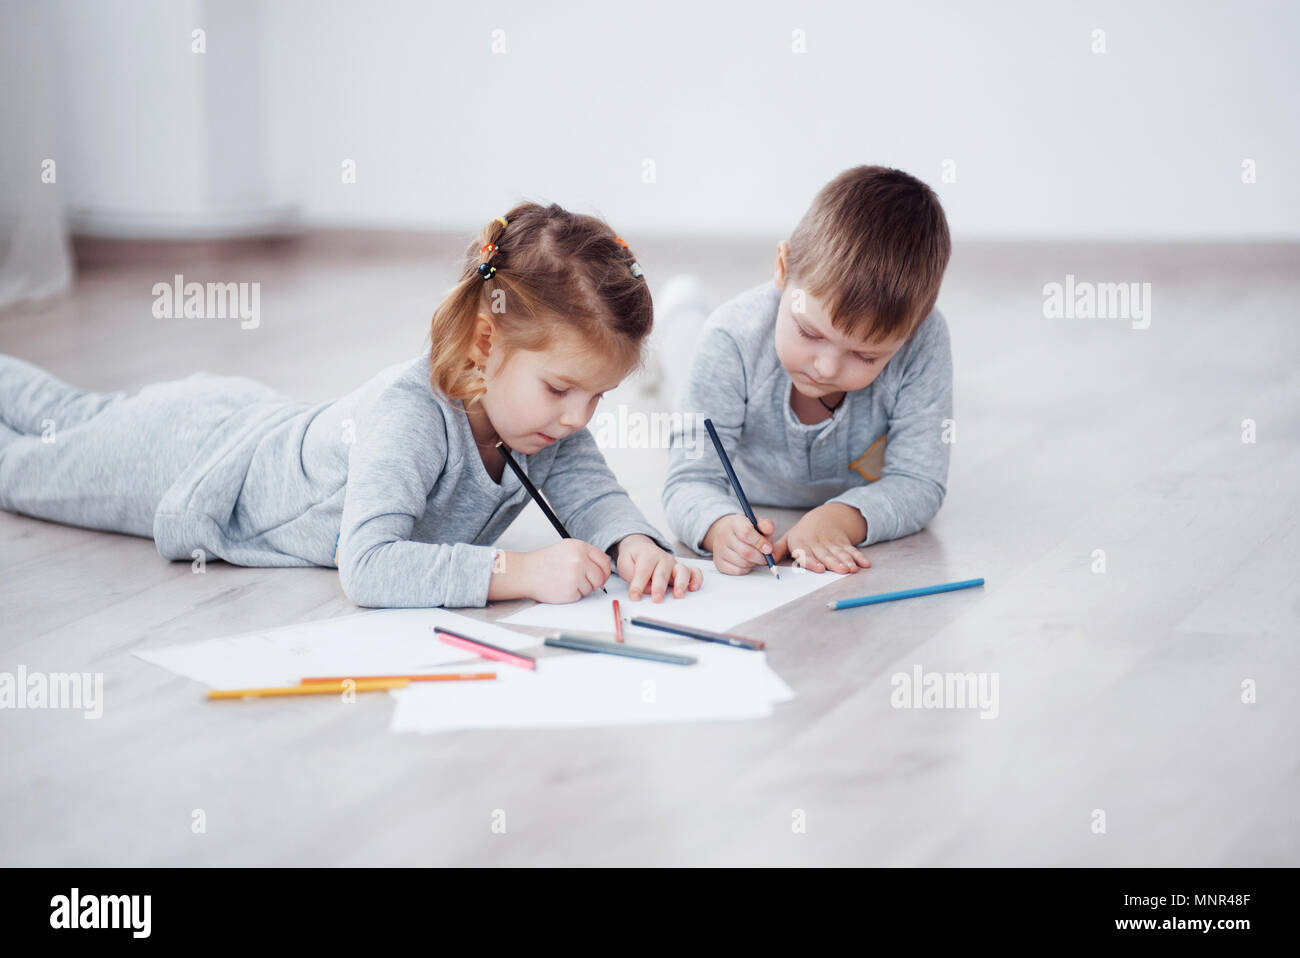 Children Lie On The Floor In Pajamas And Draw With Pencils Cute